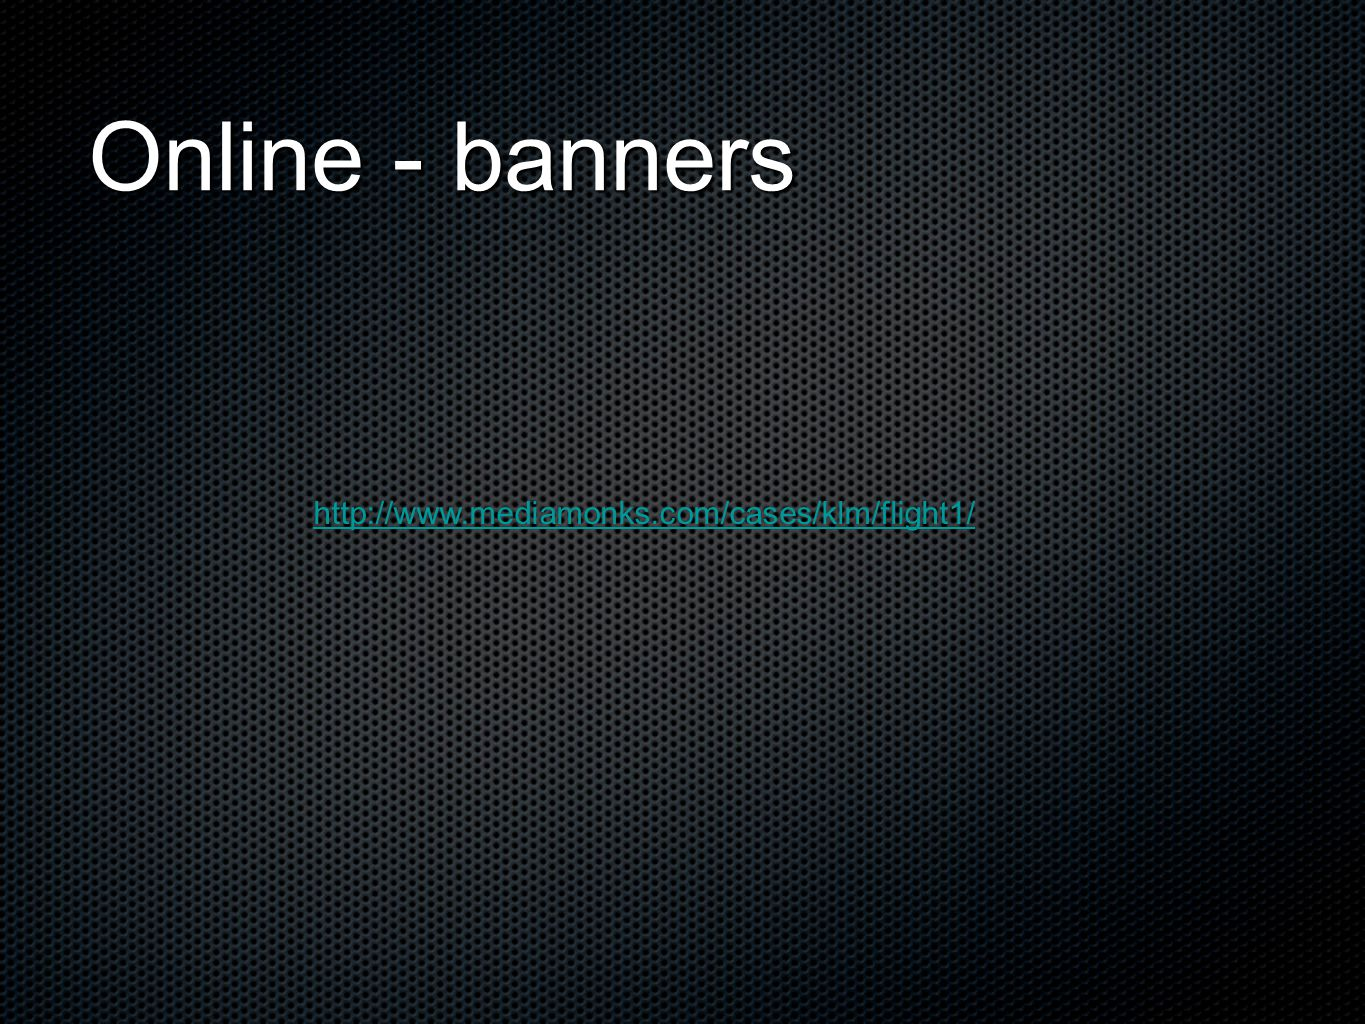 Online - banners